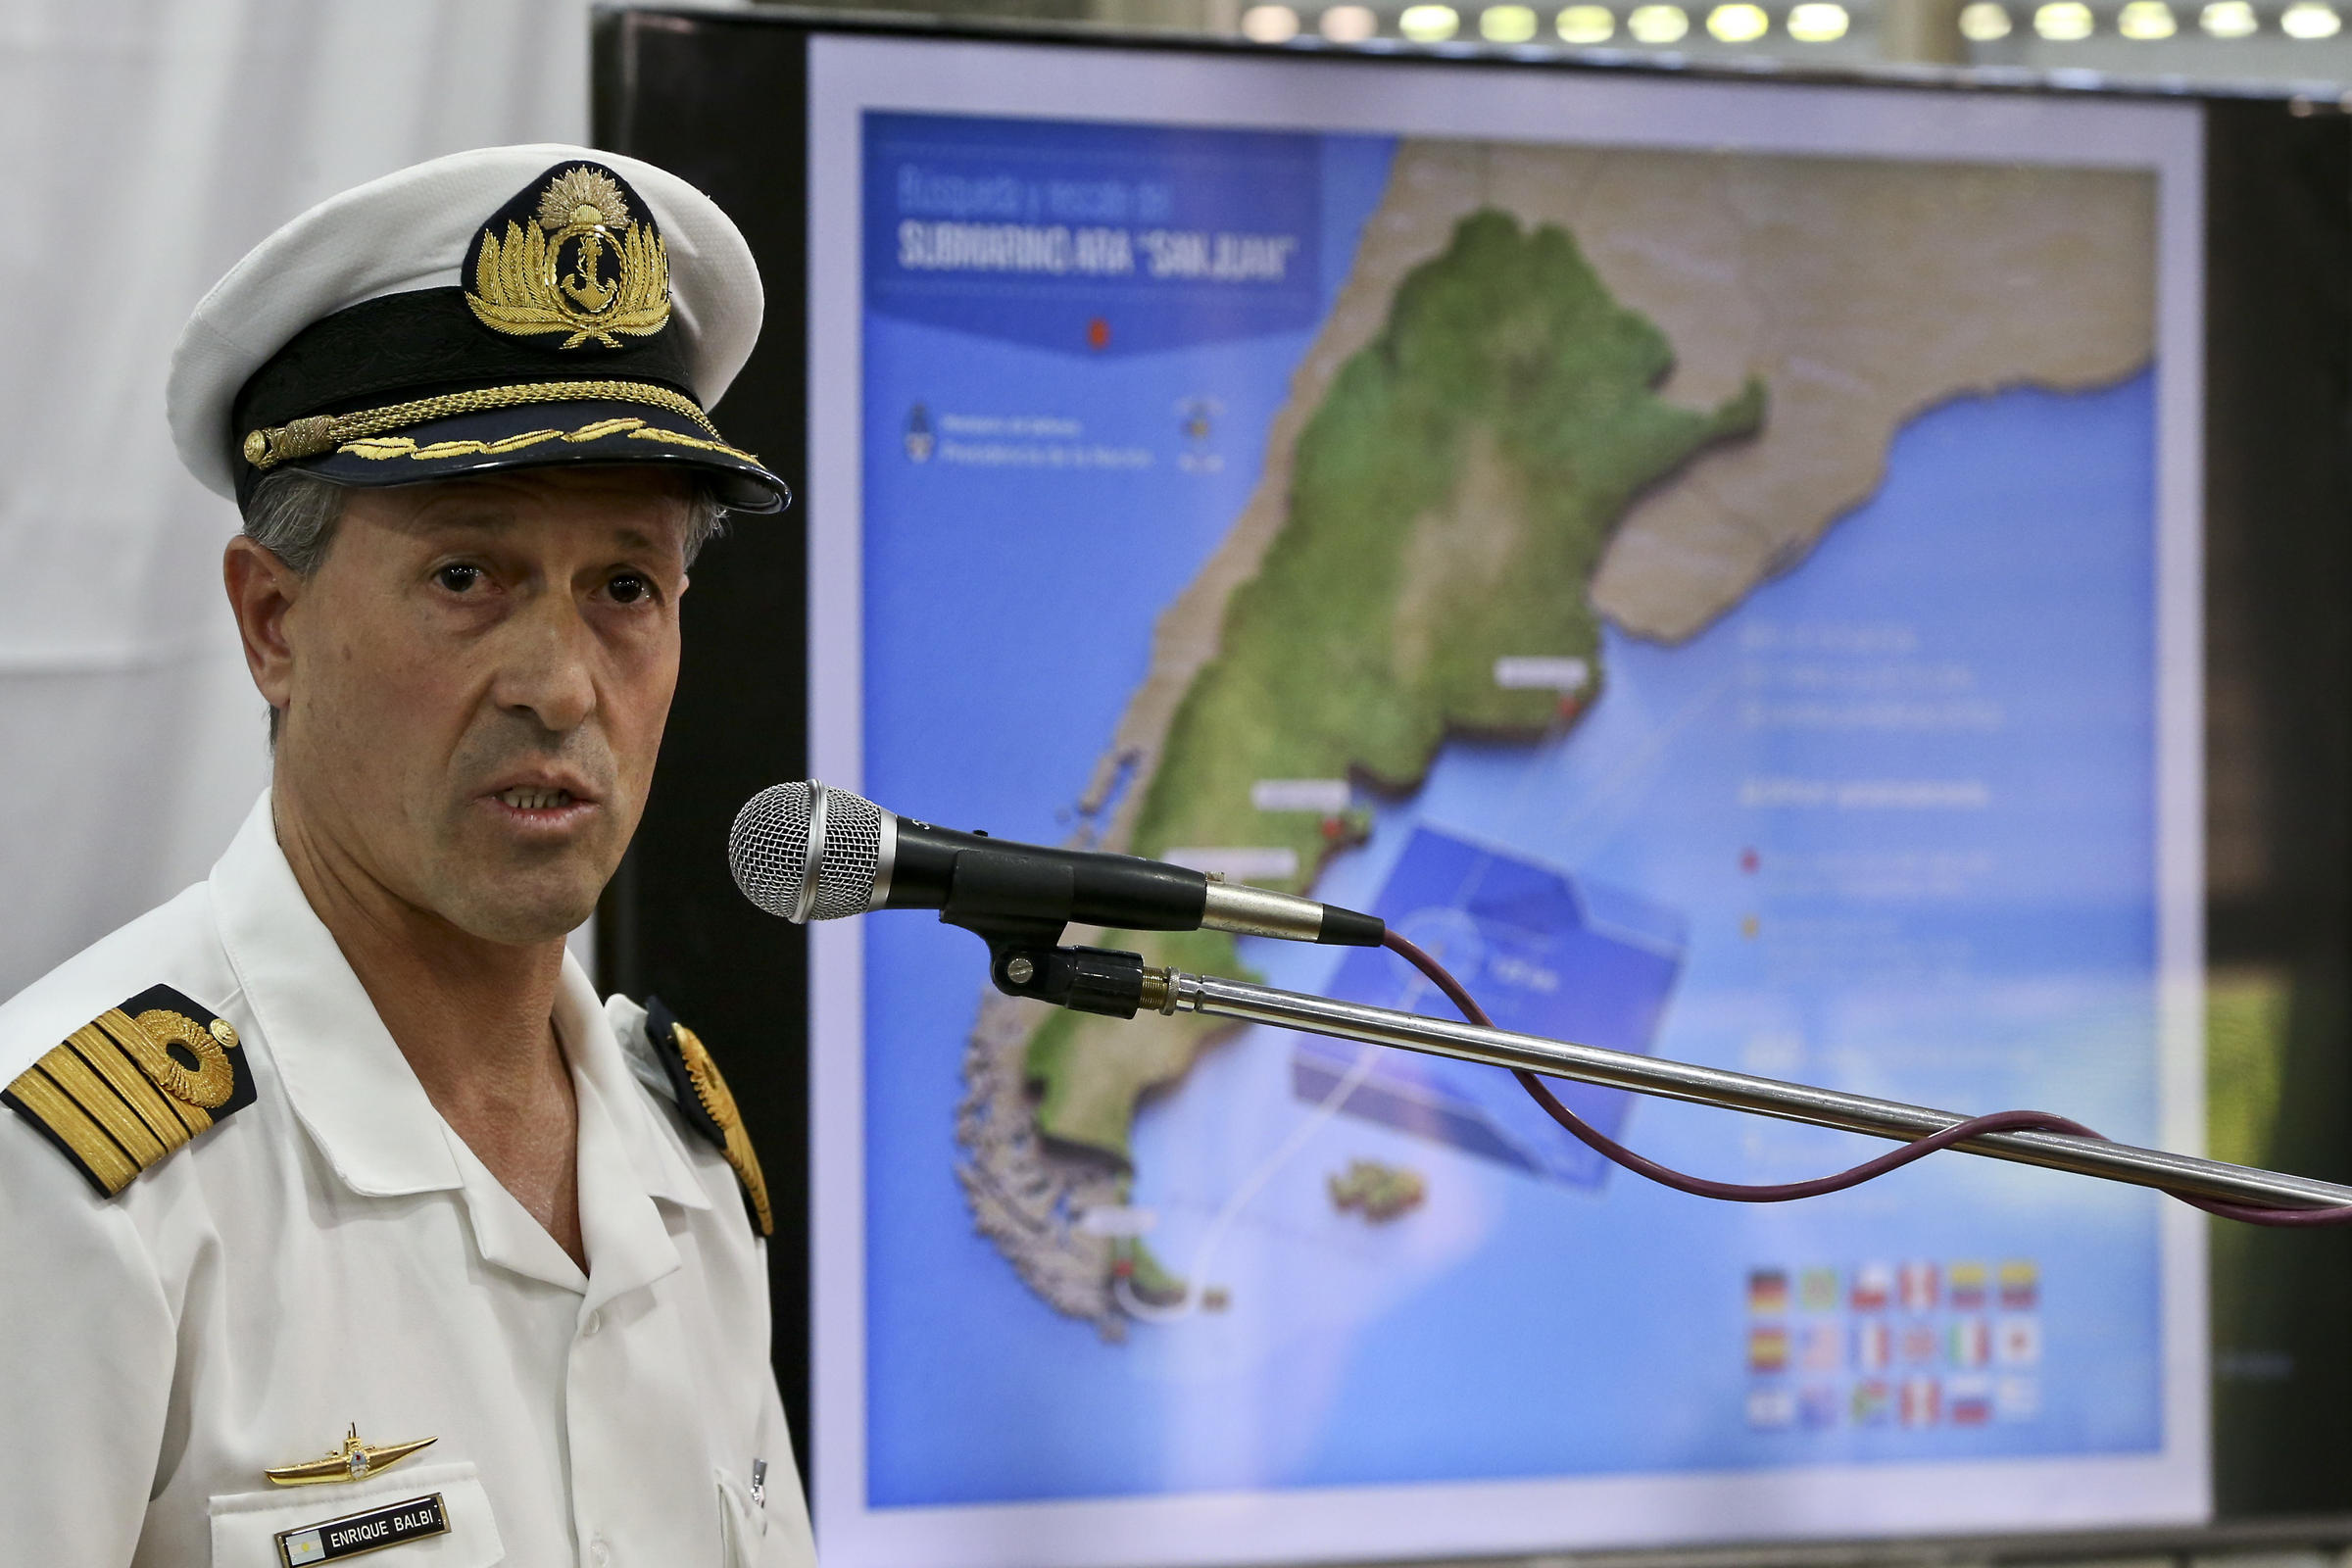 Argentina ends search for submariners